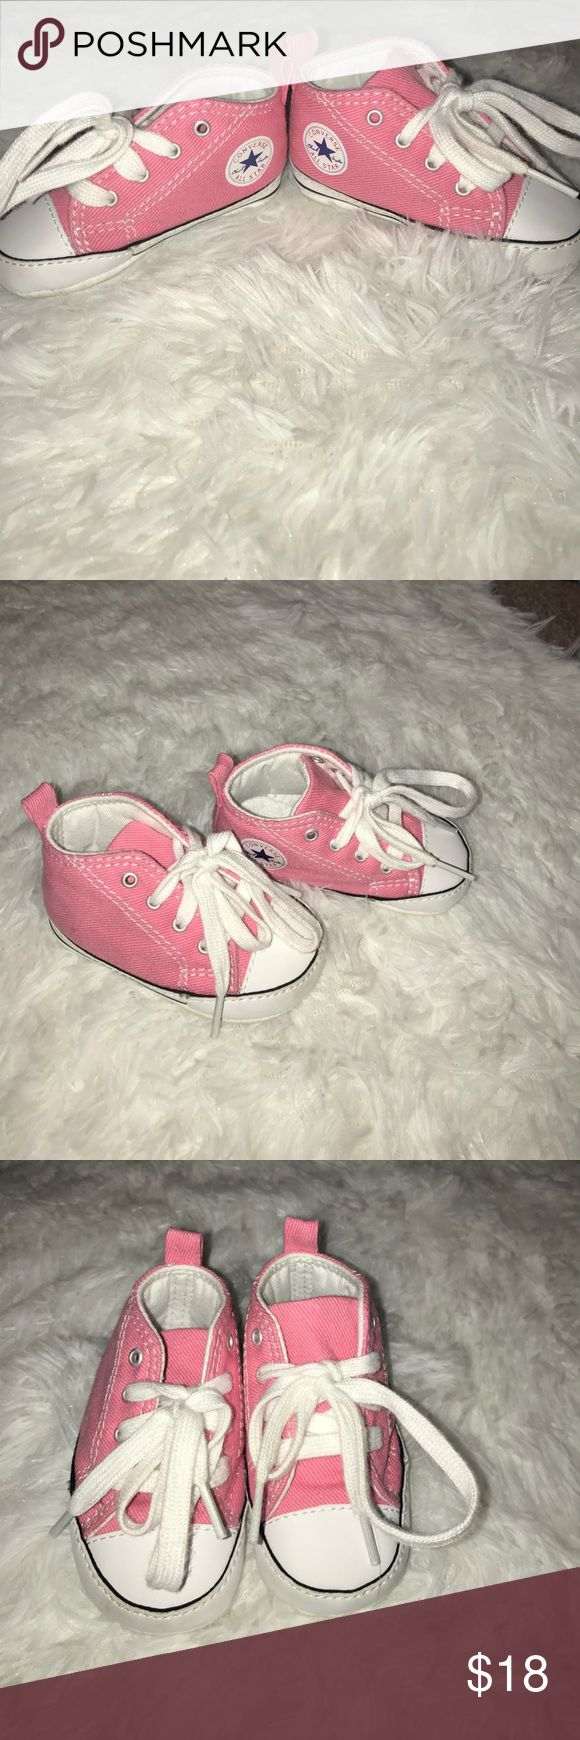 Converse Baby Shoes Pink and white Baby Converse shoes!! It's getting cooler and these will be perfect!! NWB BUNDLE 2 OR MORE KIDS ITEMS AND I'LL MAKE YOU AN OFFER! Converse Shoes Baby & Walker